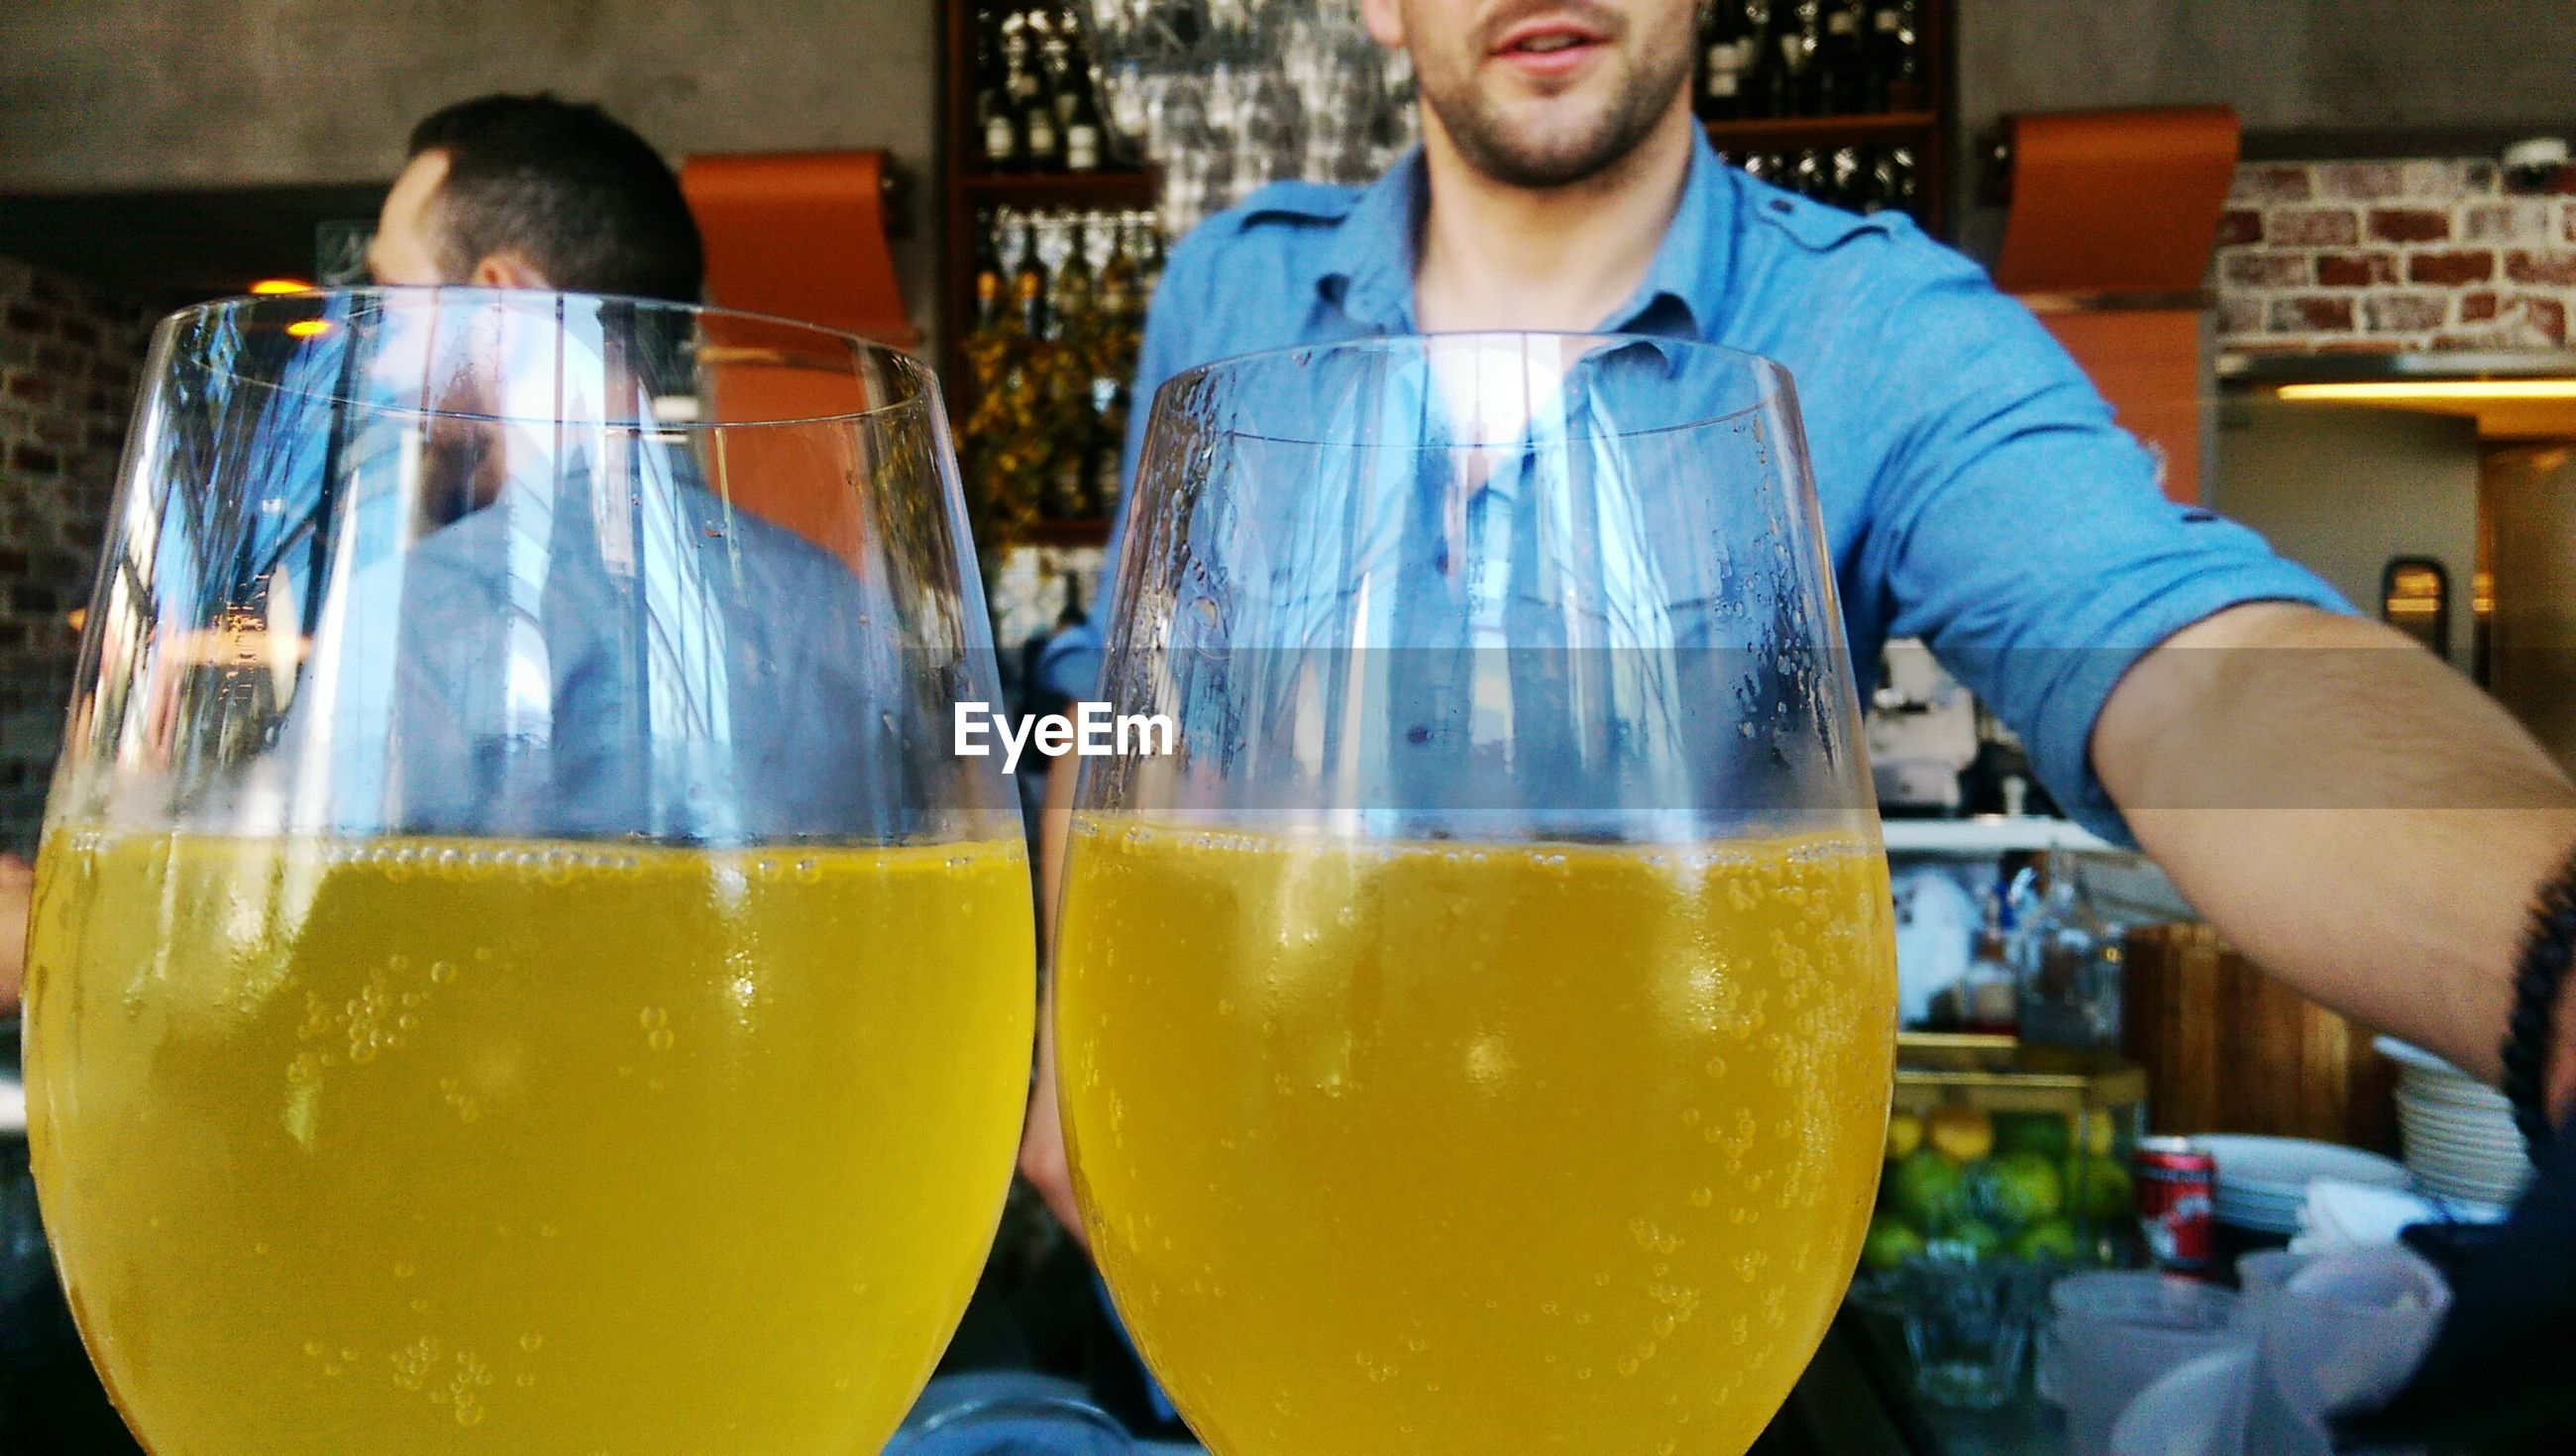 food and drink, glass - material, refreshment, drink, drinking glass, standing, transparent, leisure activity, freshness, focus on foreground, casual clothing, well-dressed